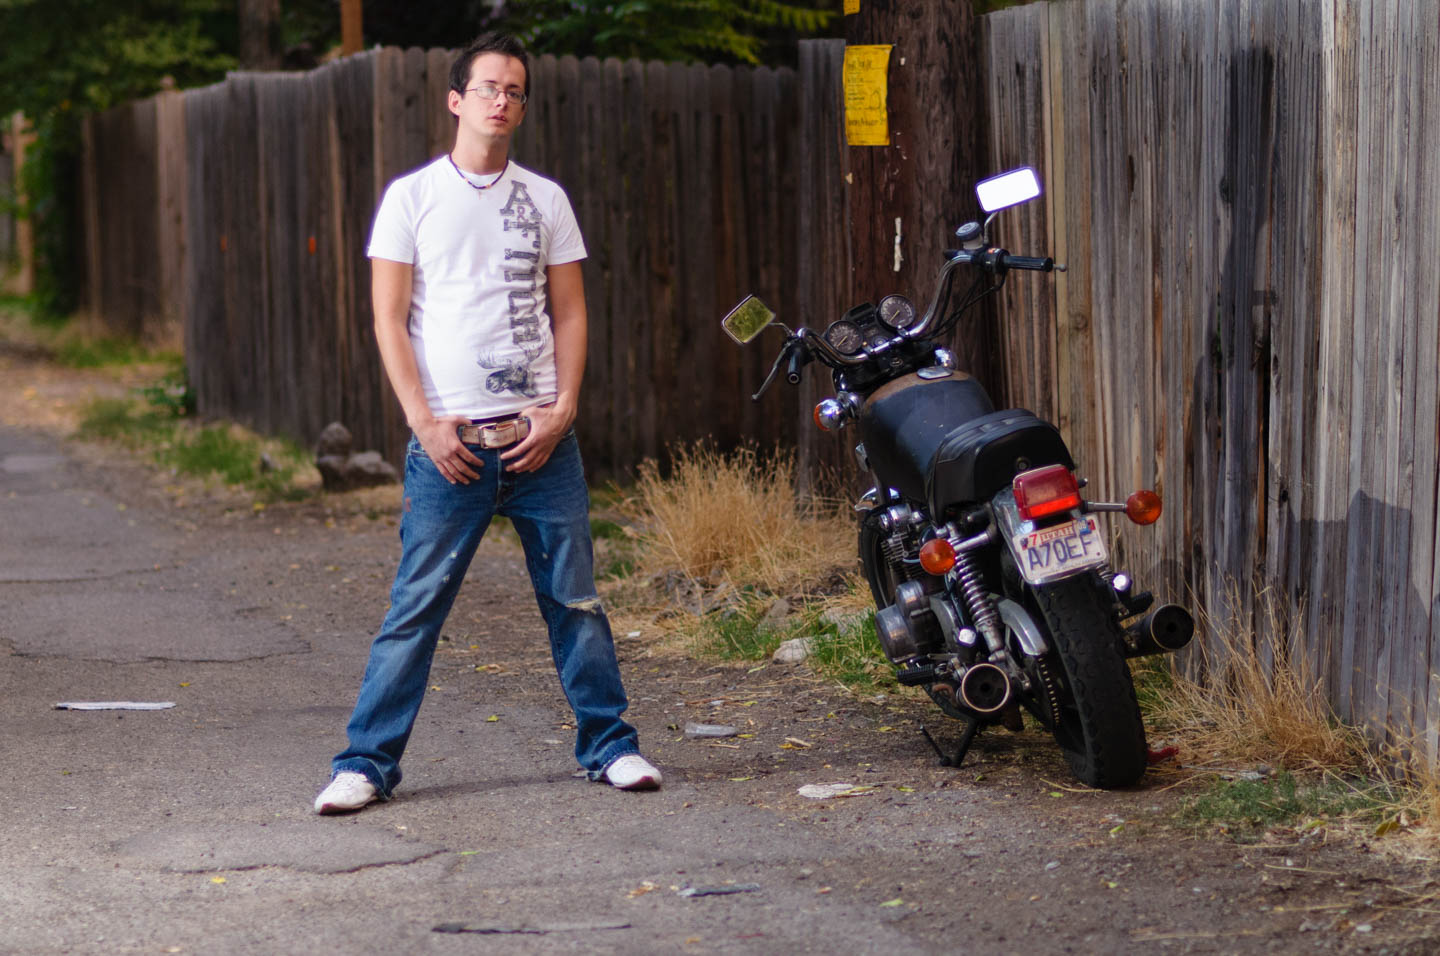 Bobbie poses next to a motorcycle